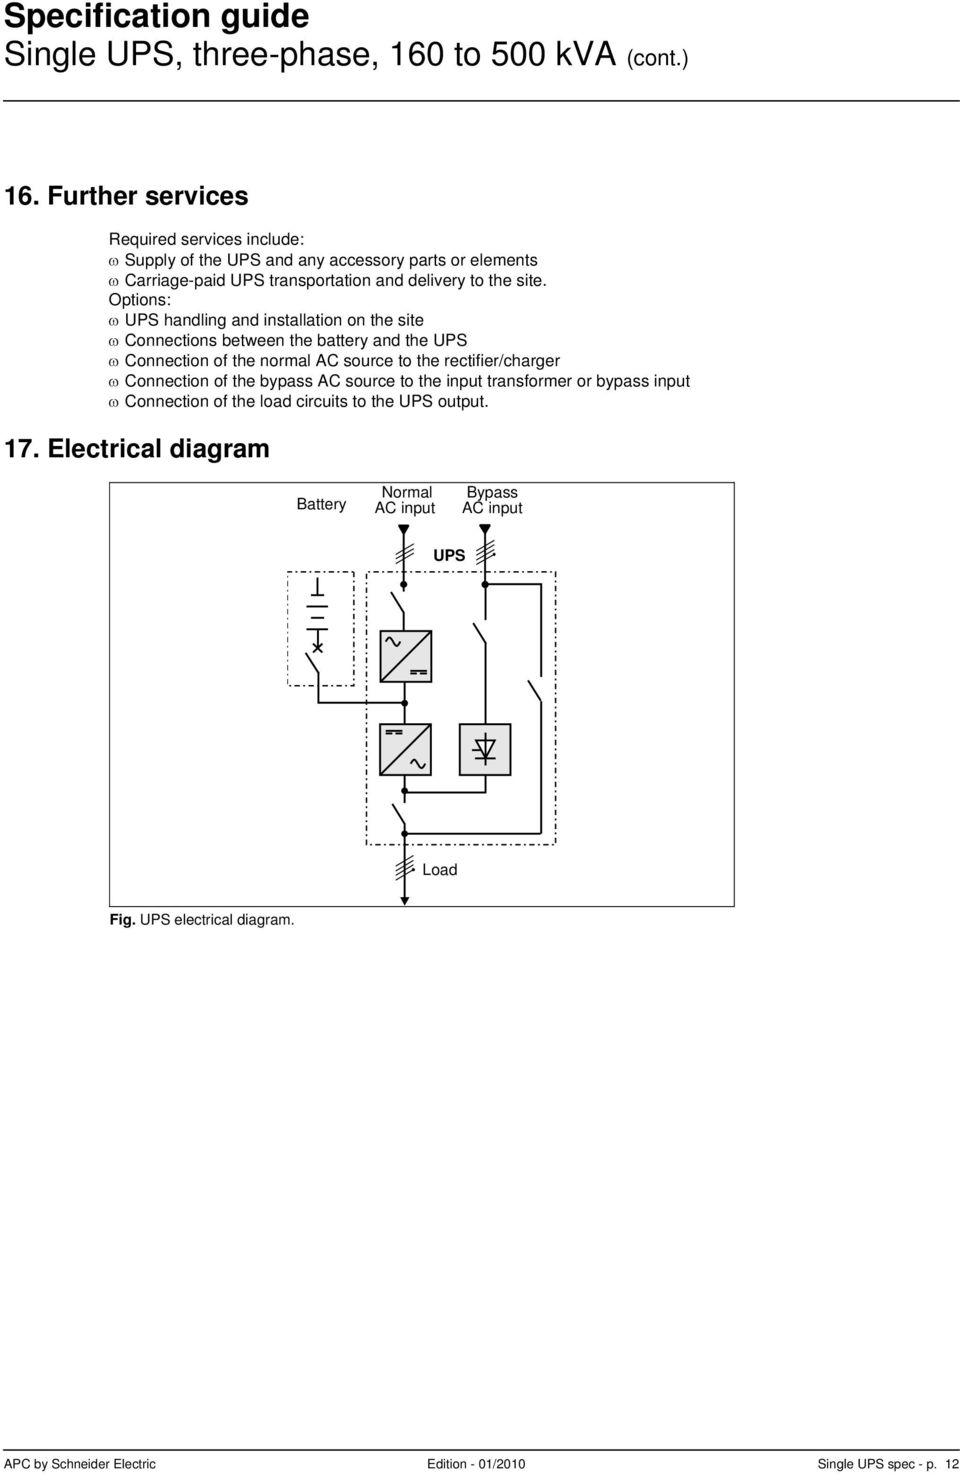 hight resolution of options ups handling and installation on the site connections between the battery and